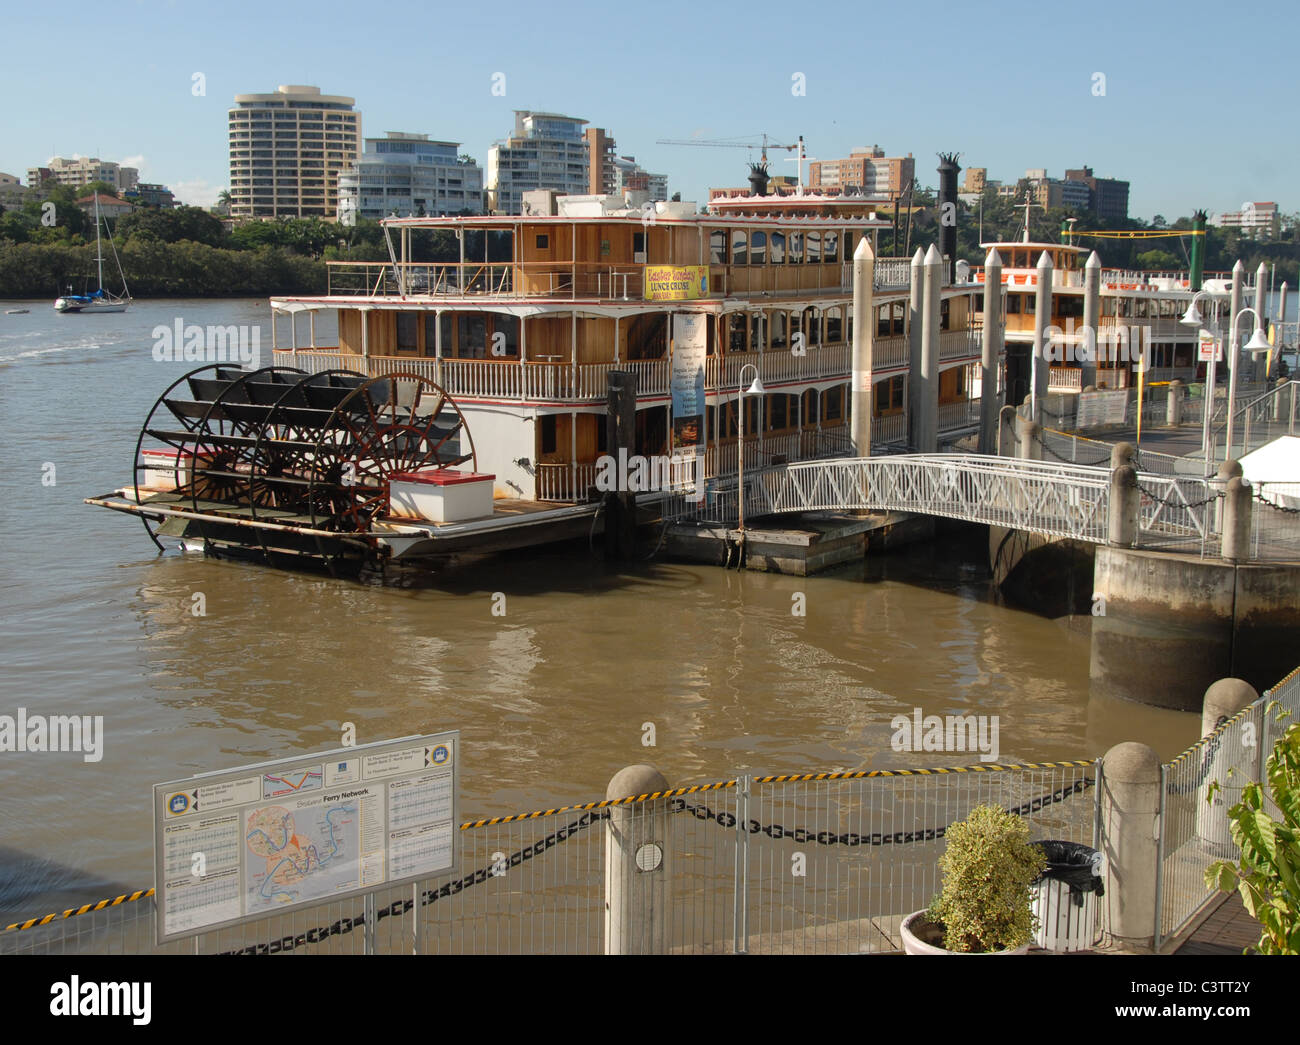 Paddle steamer on the Brisbane river of Brisbane, capital of Queensland, Australia, taking tourists on sightseeing - Stock Image